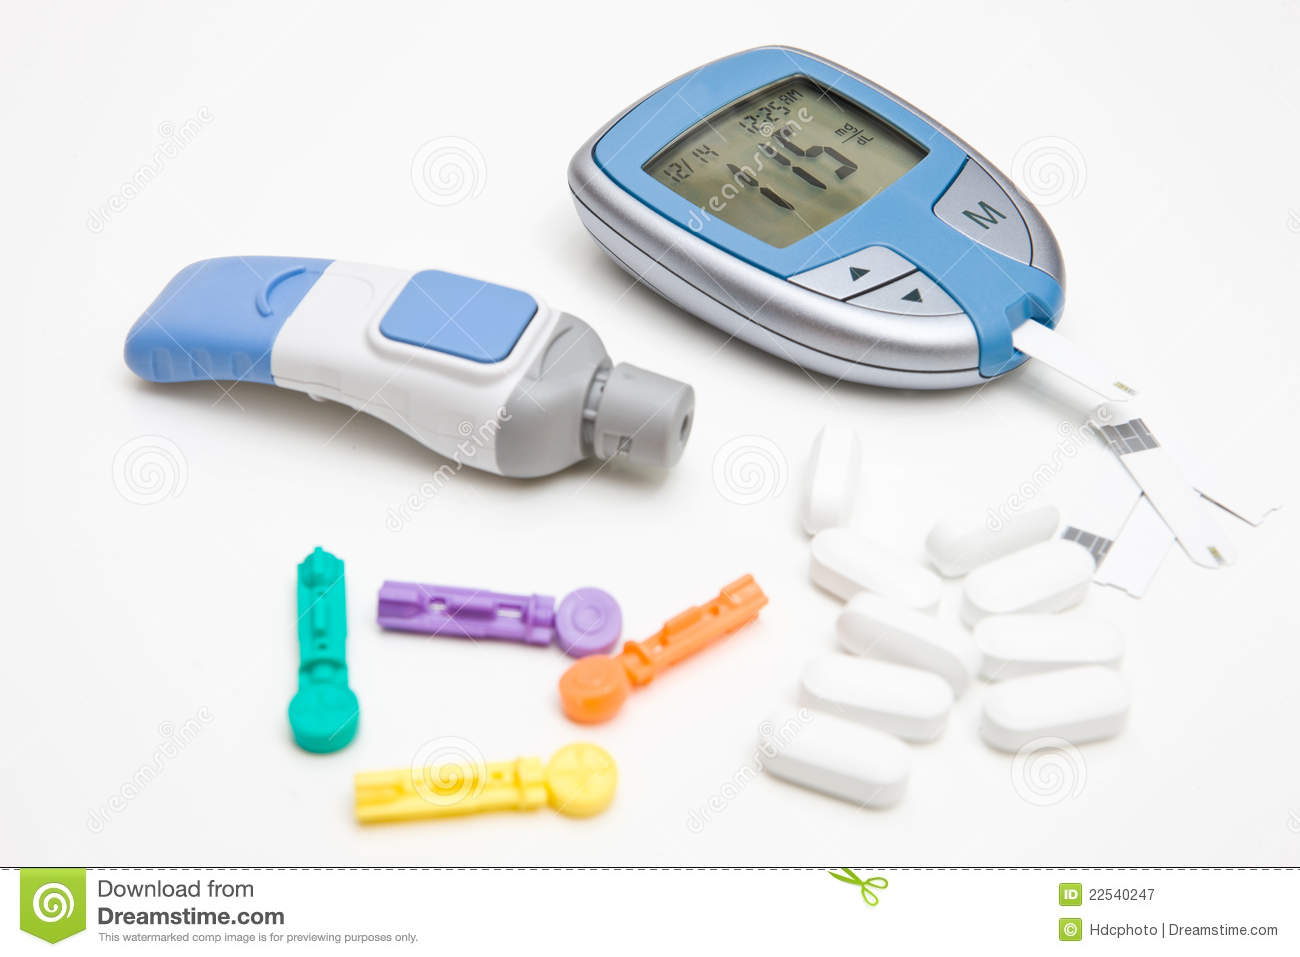 Diabetic Supplies Royalty Free Stock Photography - Image: 22540247